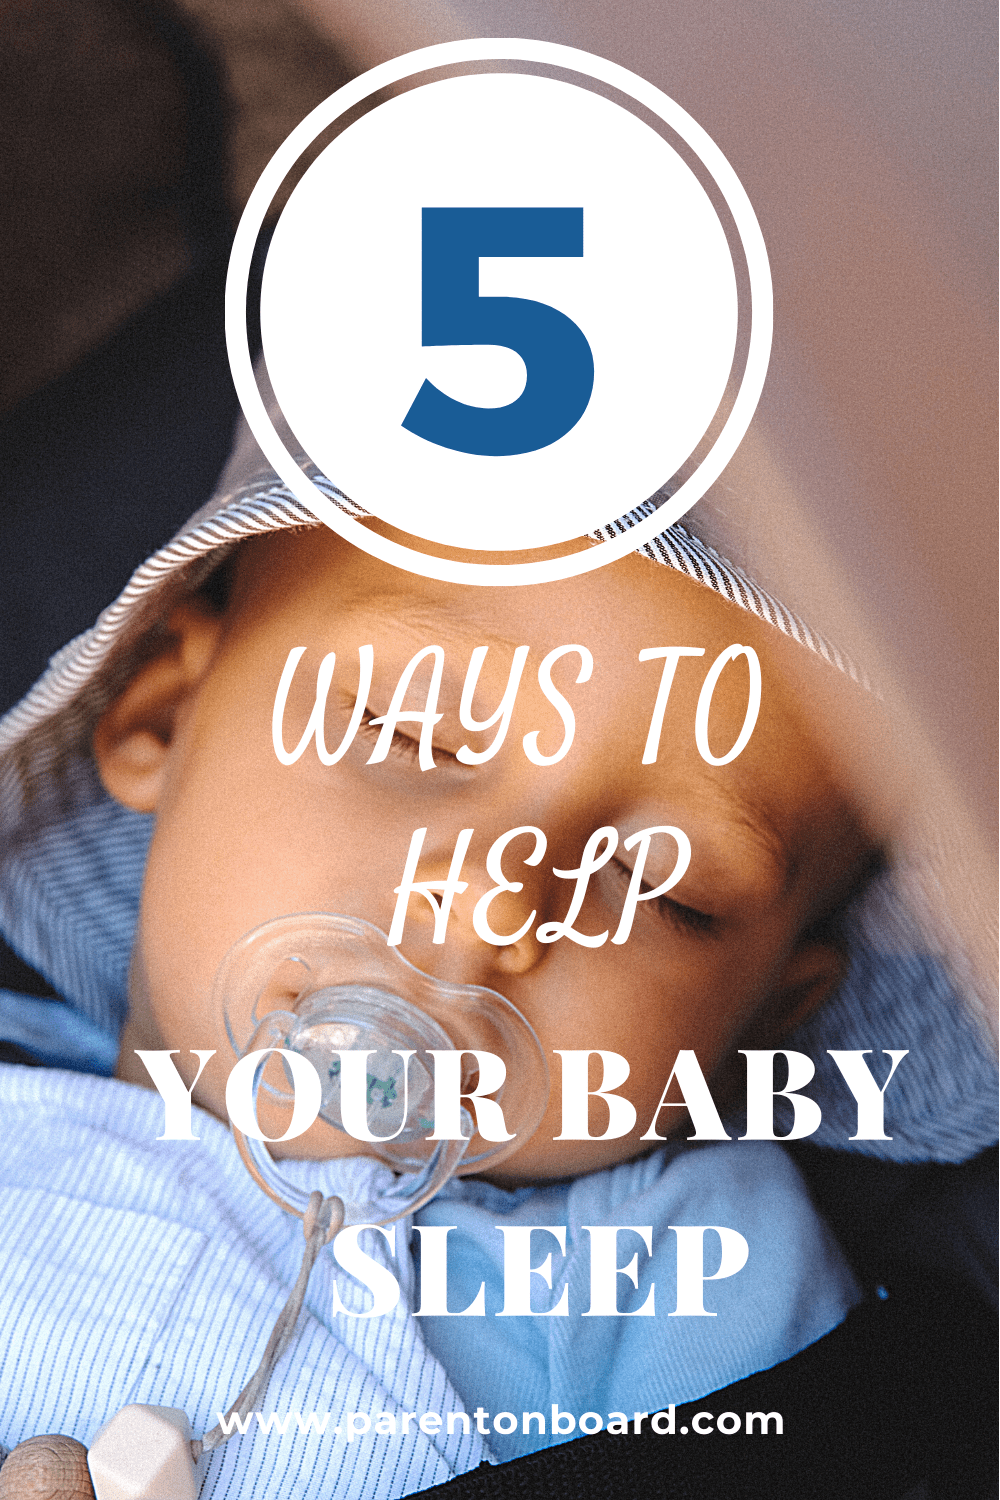 5 Simple Ways to Solve Baby Sleep Problems